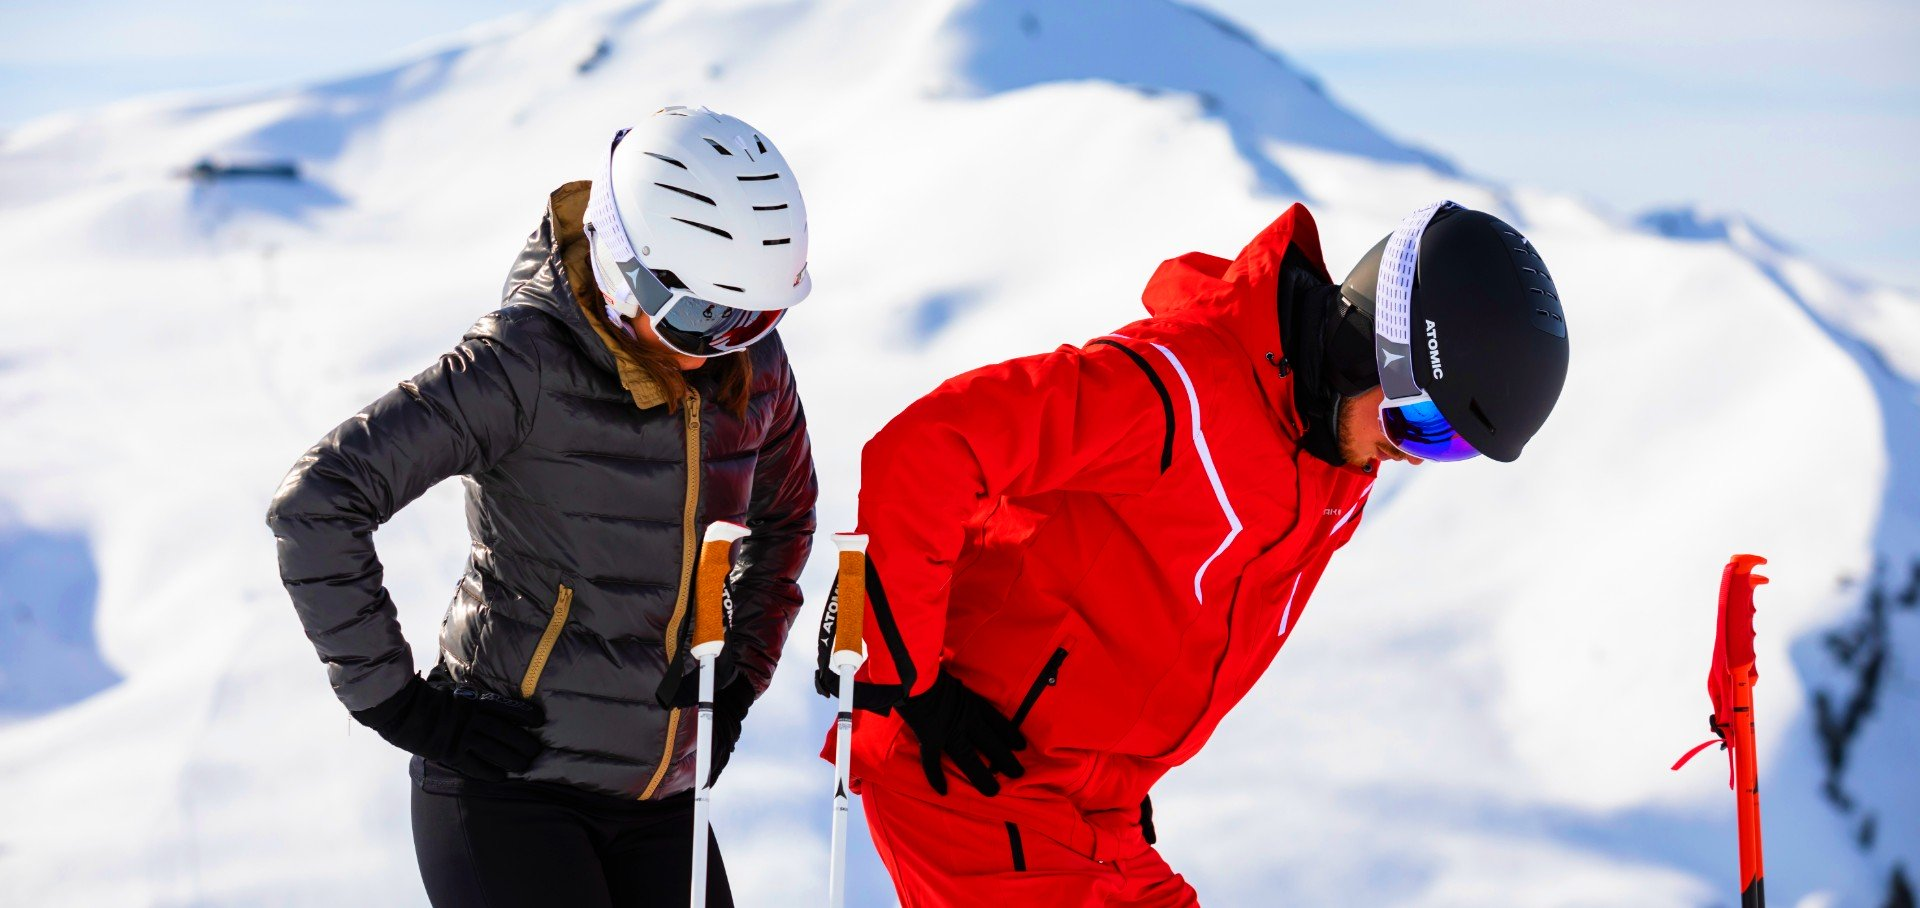 A ski instructor is showing a girl the posture to keep while skiing.